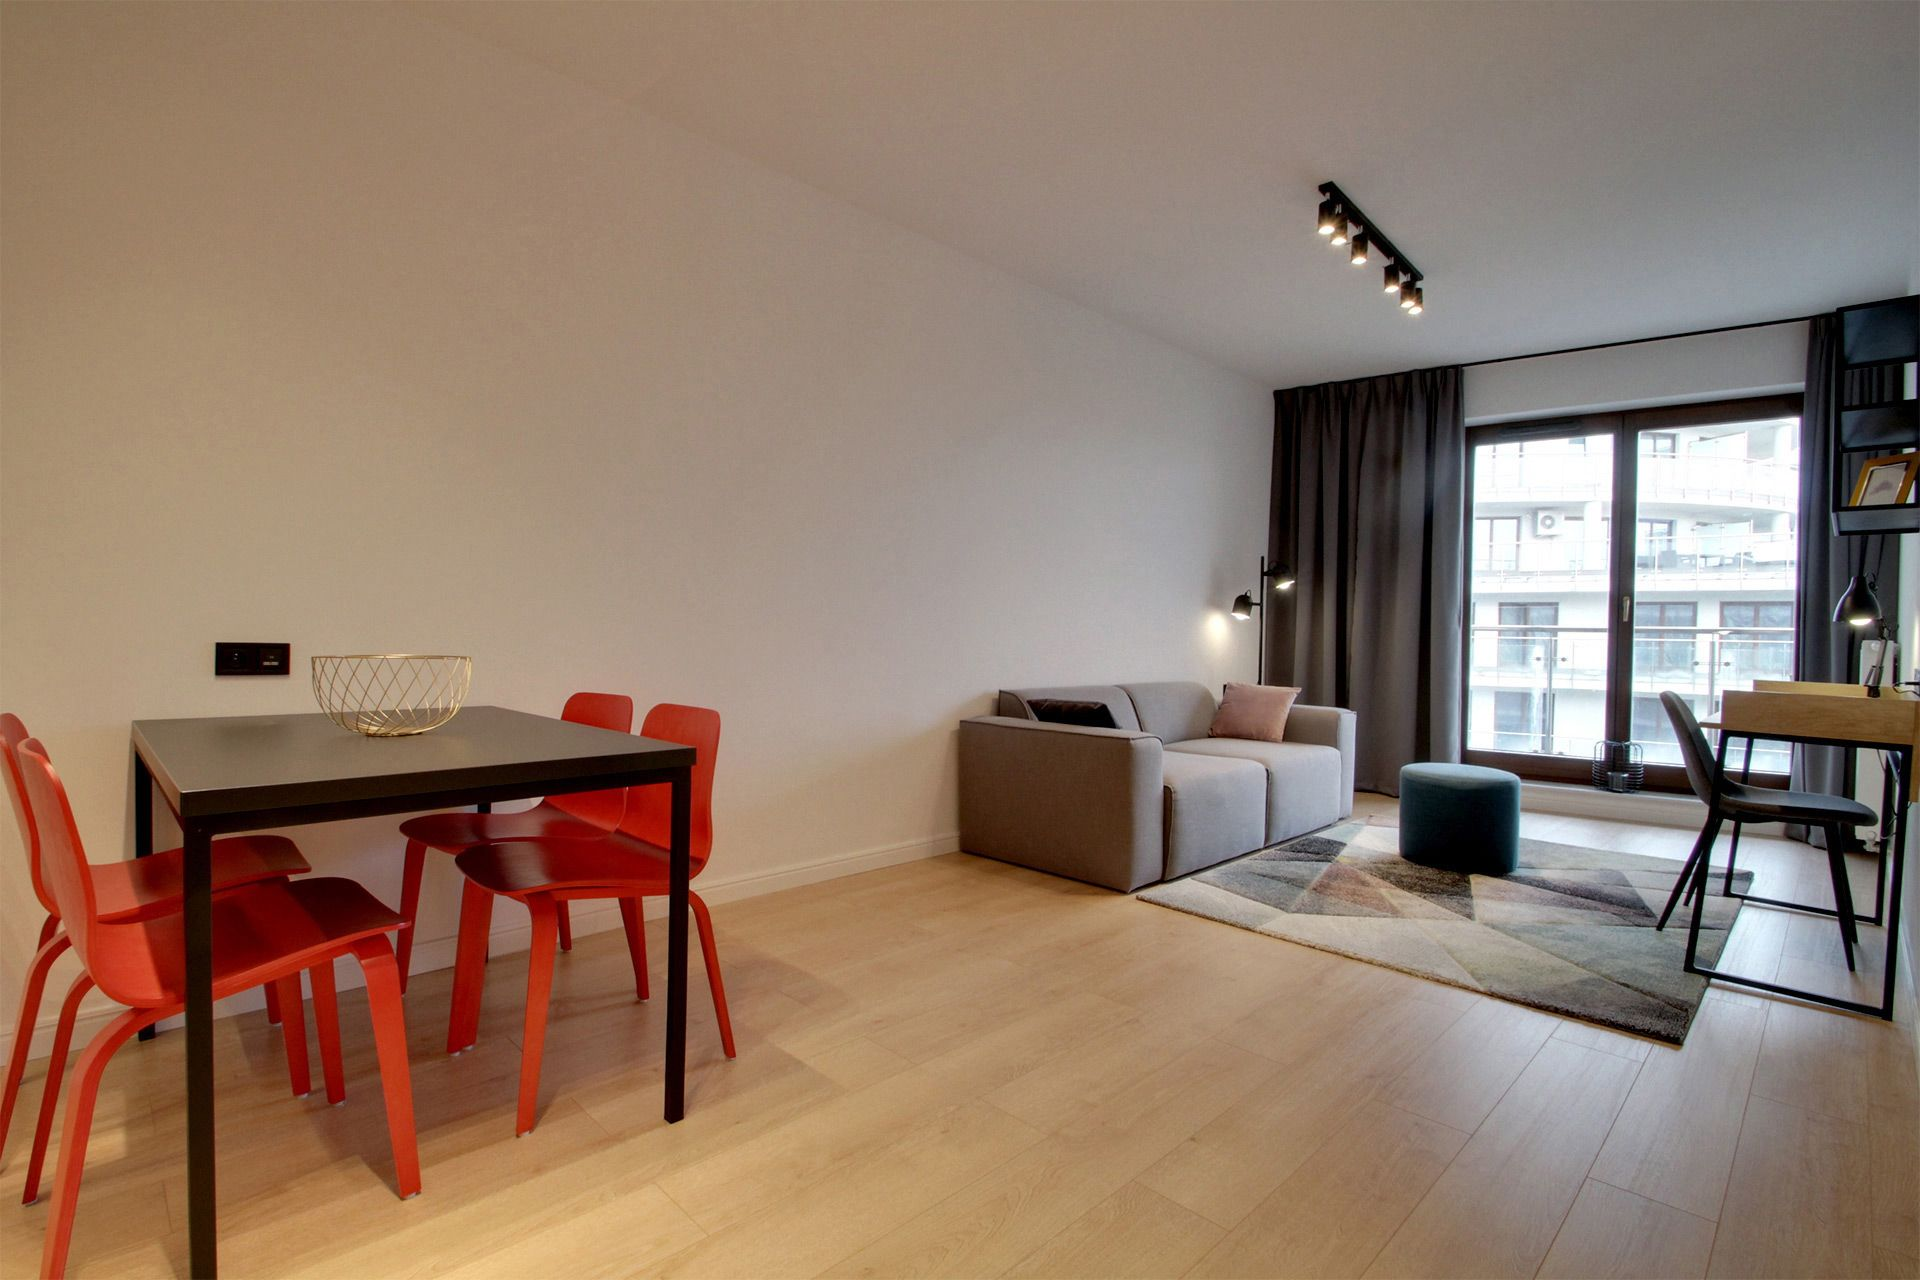 1 Bedroom - Large apartment to rent in Warsaw UPR-A-053-1